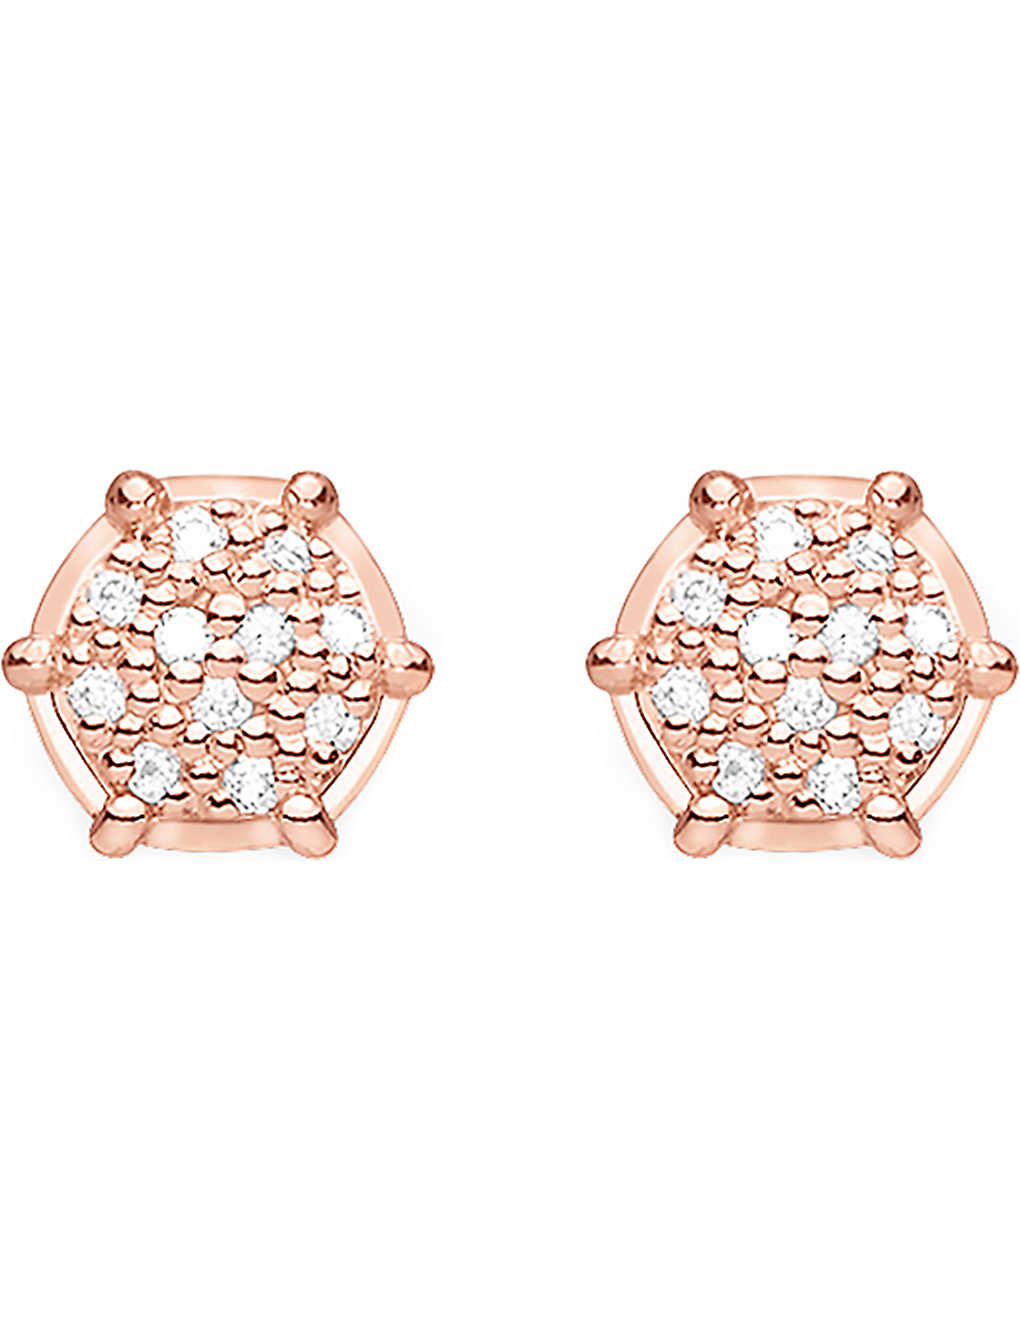 18fff7cc5 THOMAS SABO - Glam & Soul 18ct rose gold-plated and diamond earrings ...